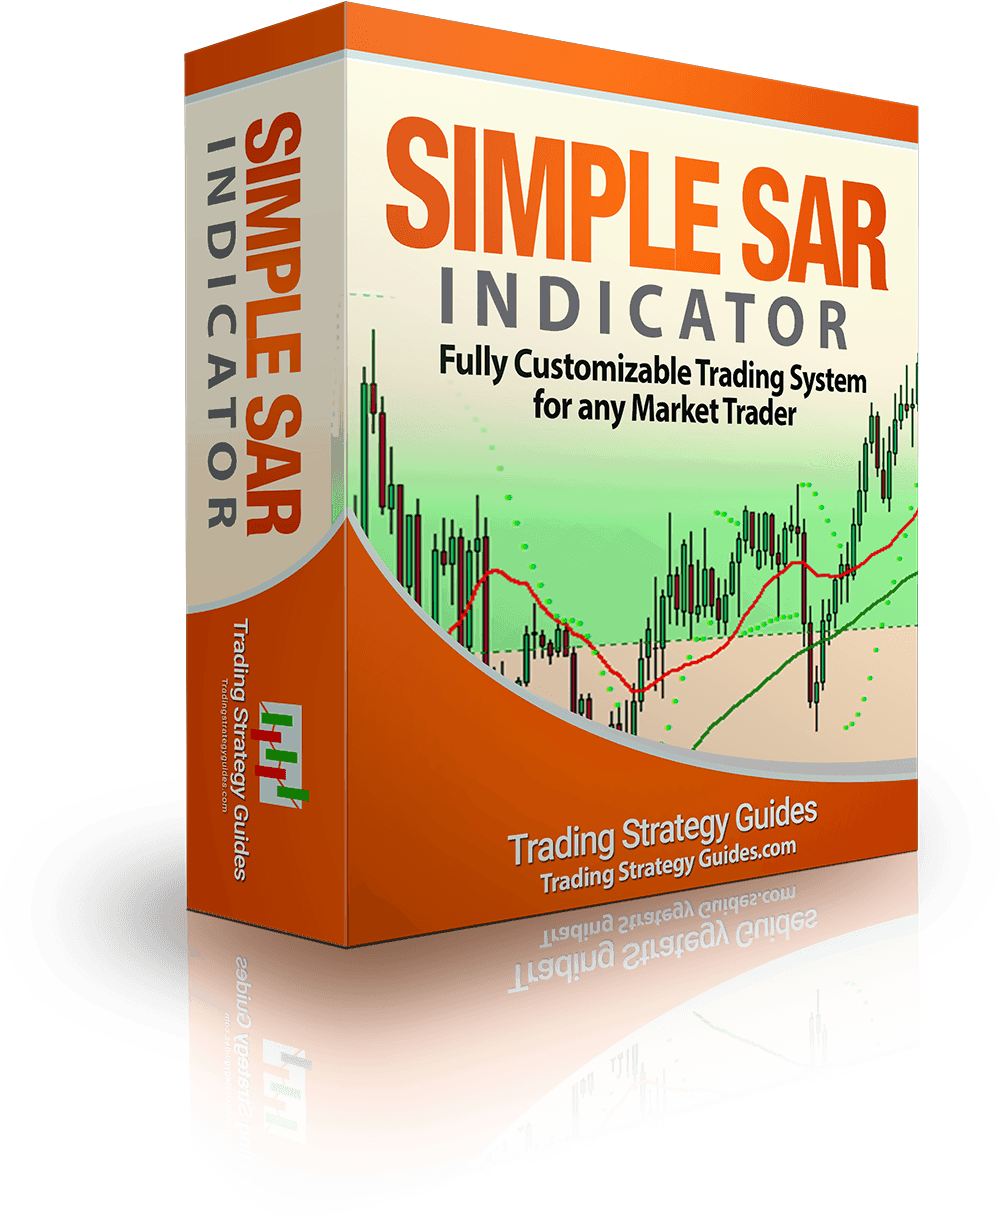 simple sar trading system